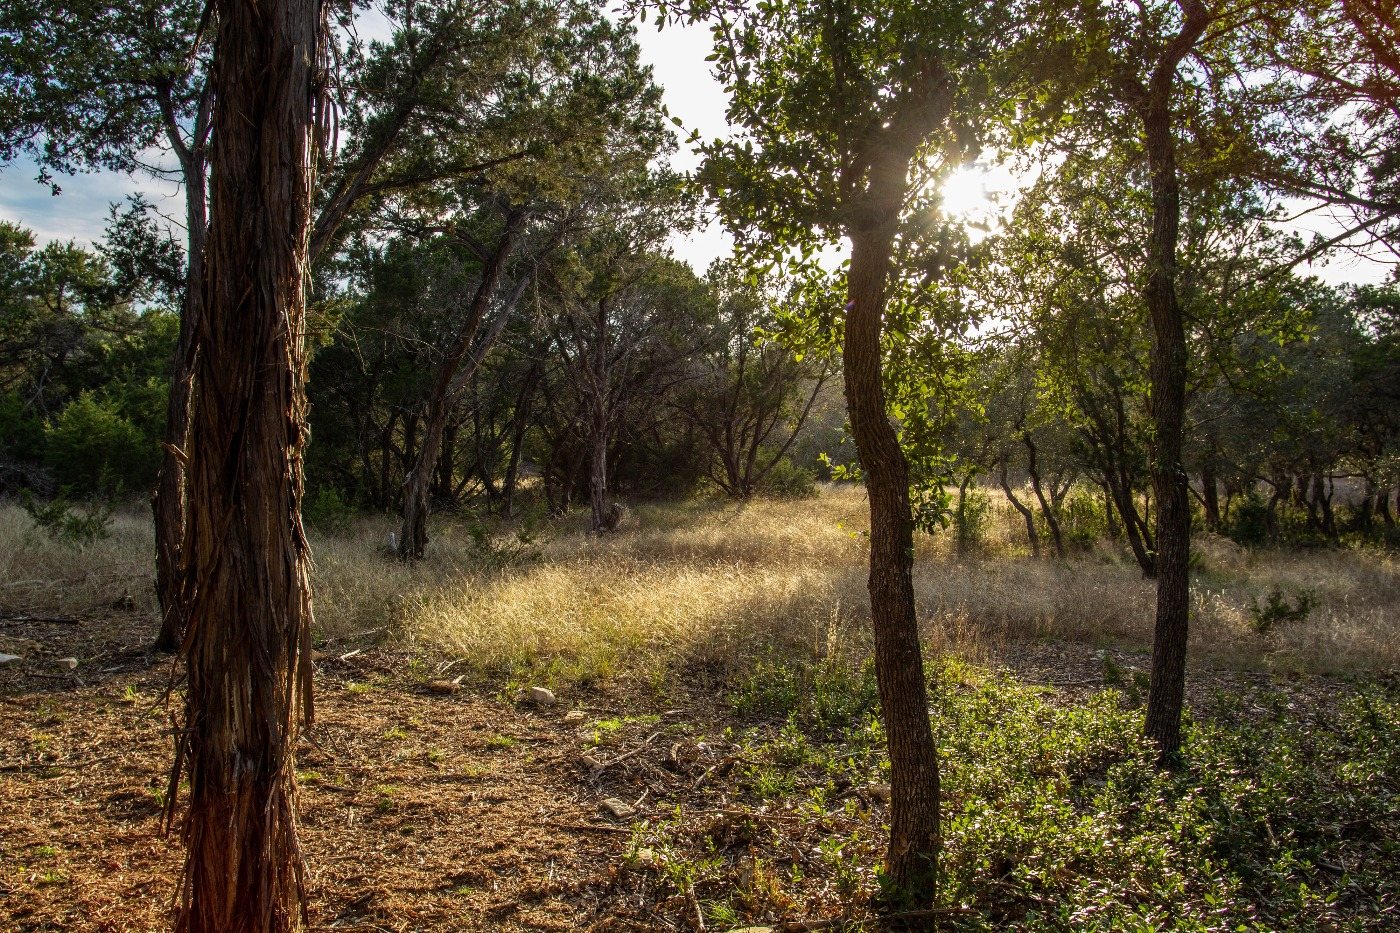 event center day2 D.jpg